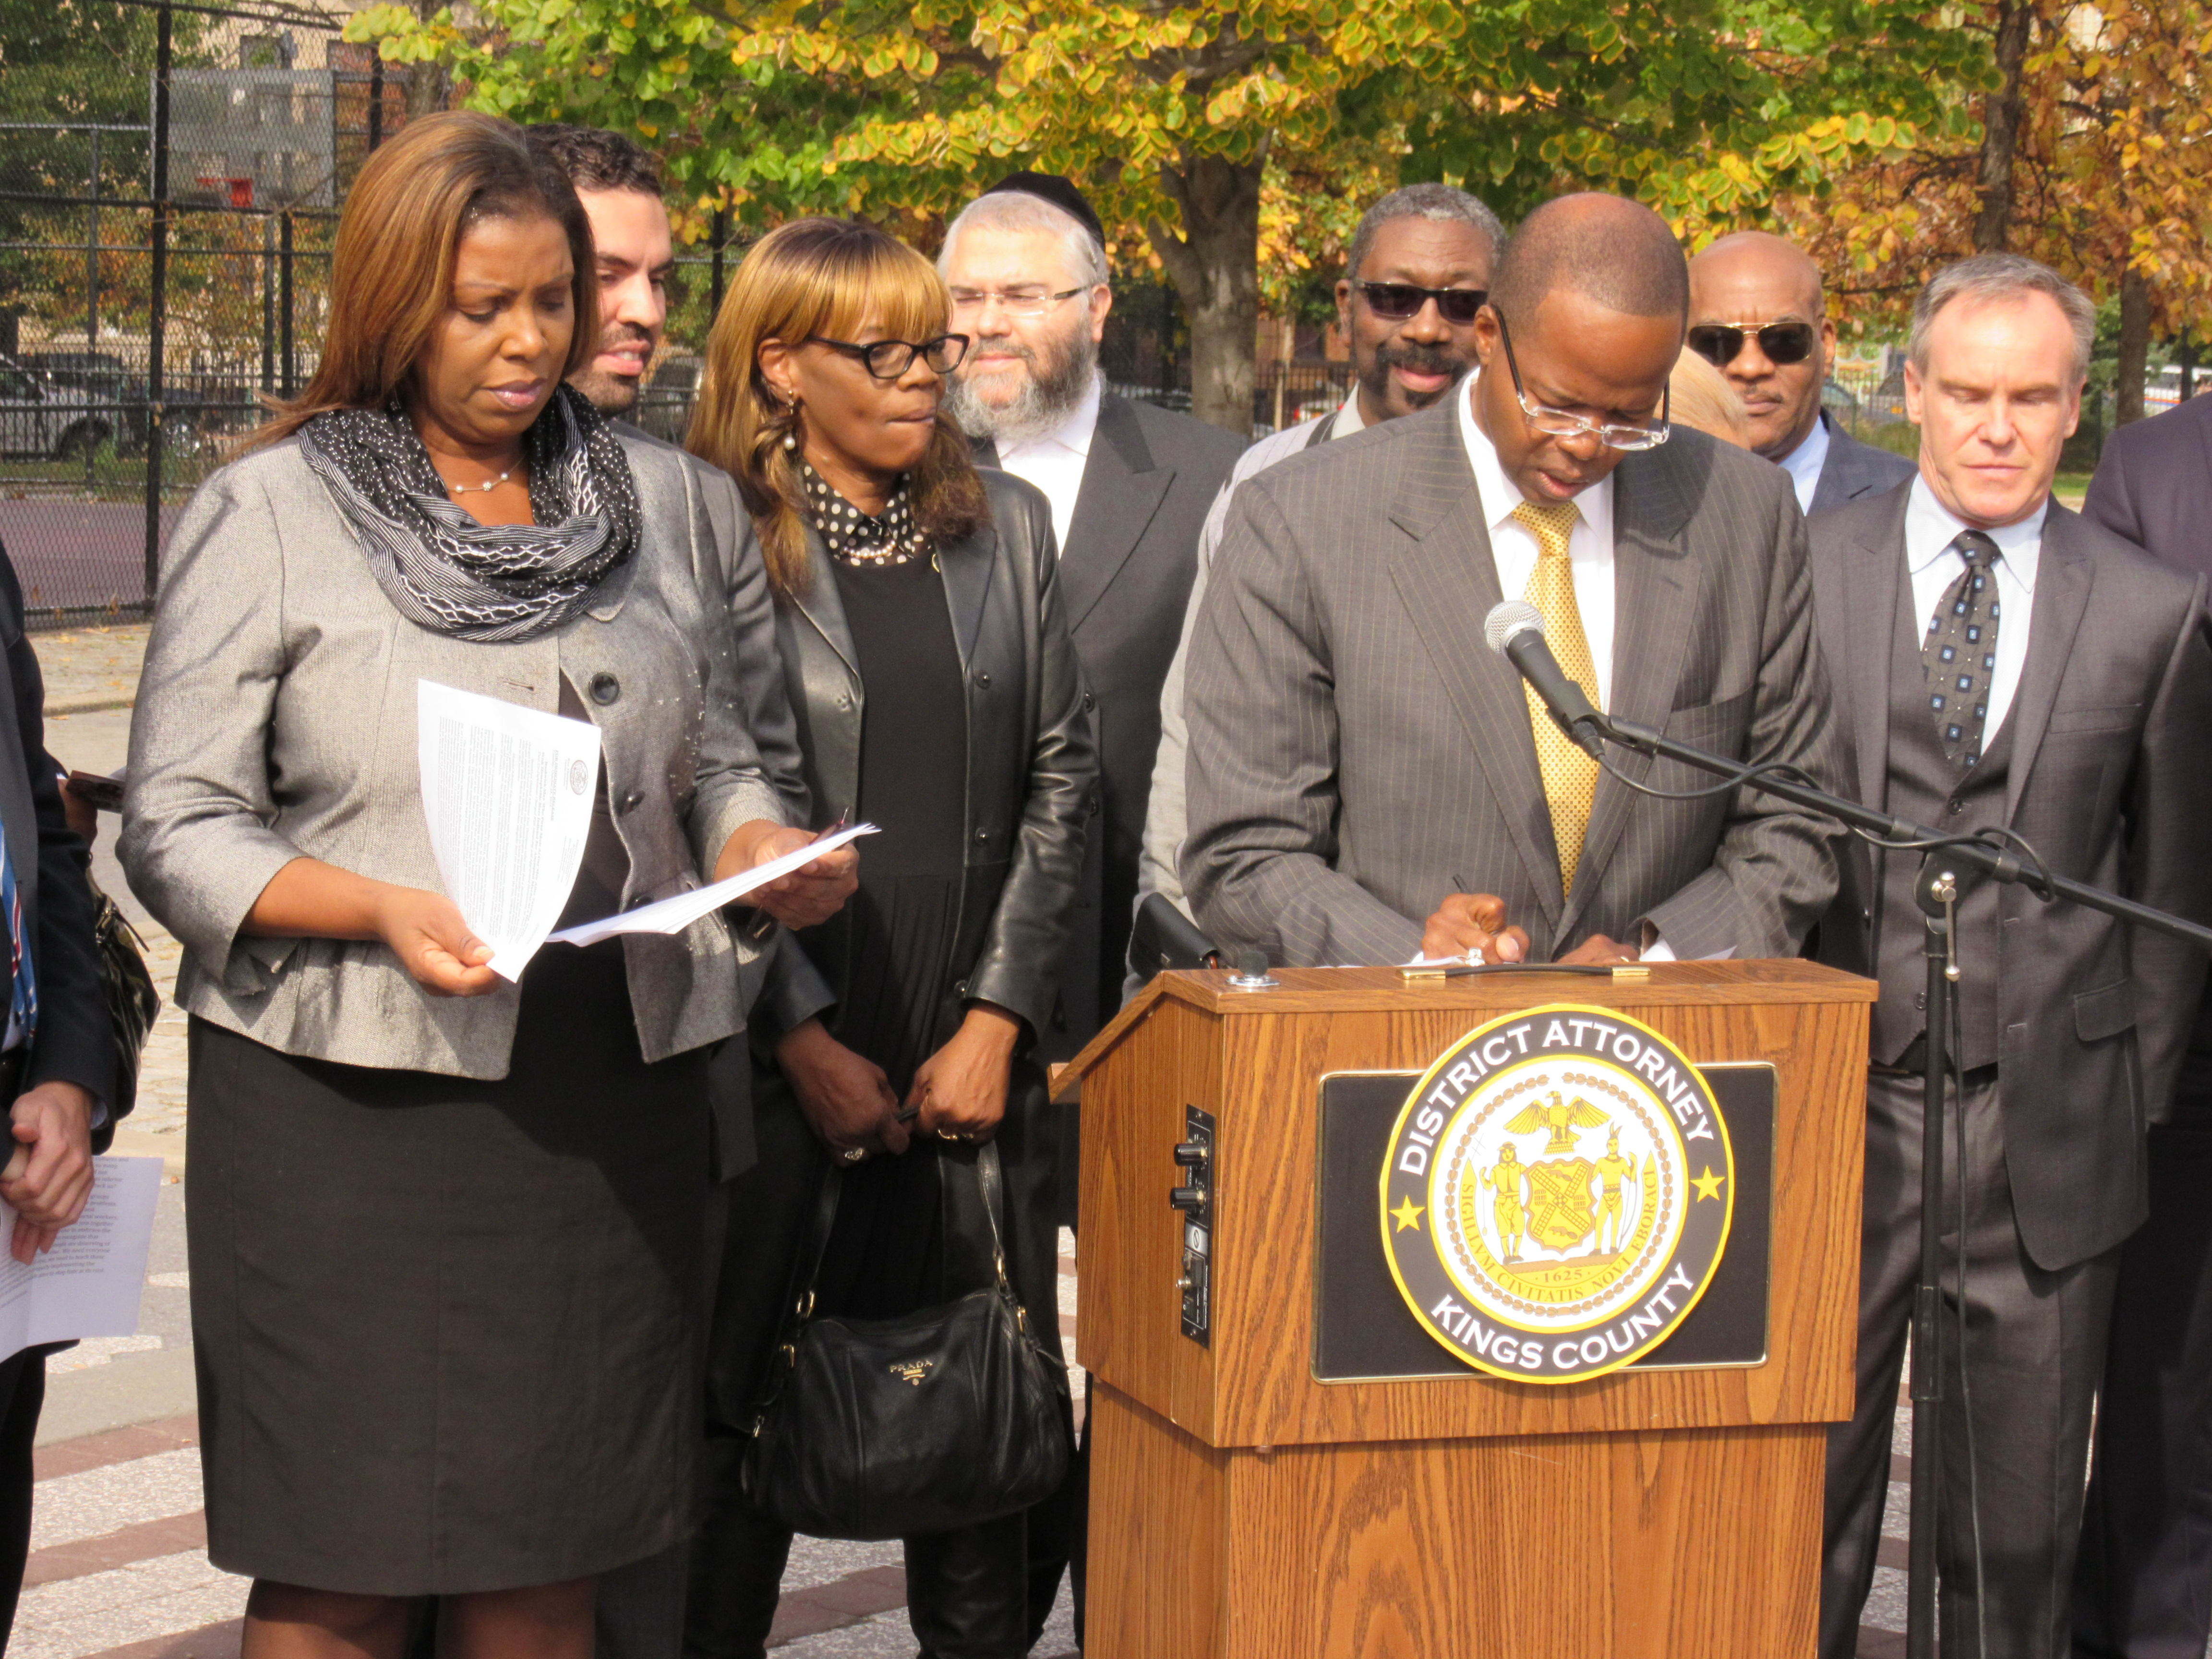 Public Advocate Letitia James, left, beside Brooklyn District Attorney Kenneth Thompson today (Photo: Will Bredderman).